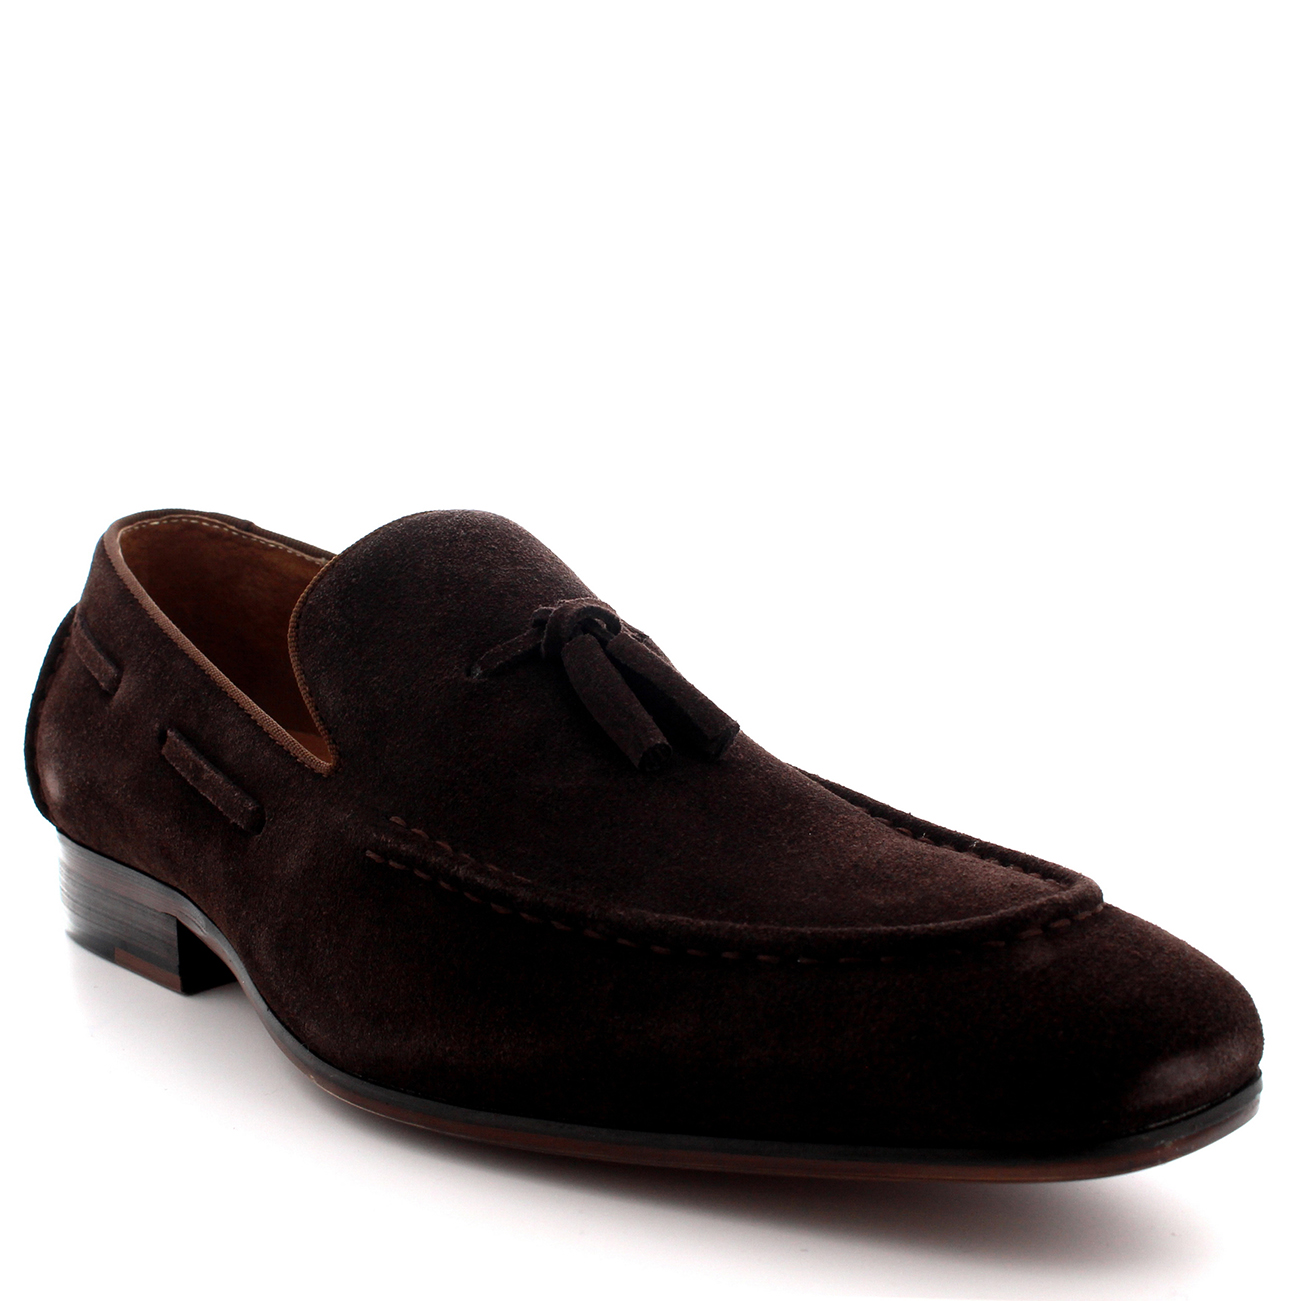 Women's Loafers: Free Shipping on orders over $45 at Find the latest styles of Shoes from desire-date.tk Your Online Women's Shoes Store! Get 5% in rewards with Club O!